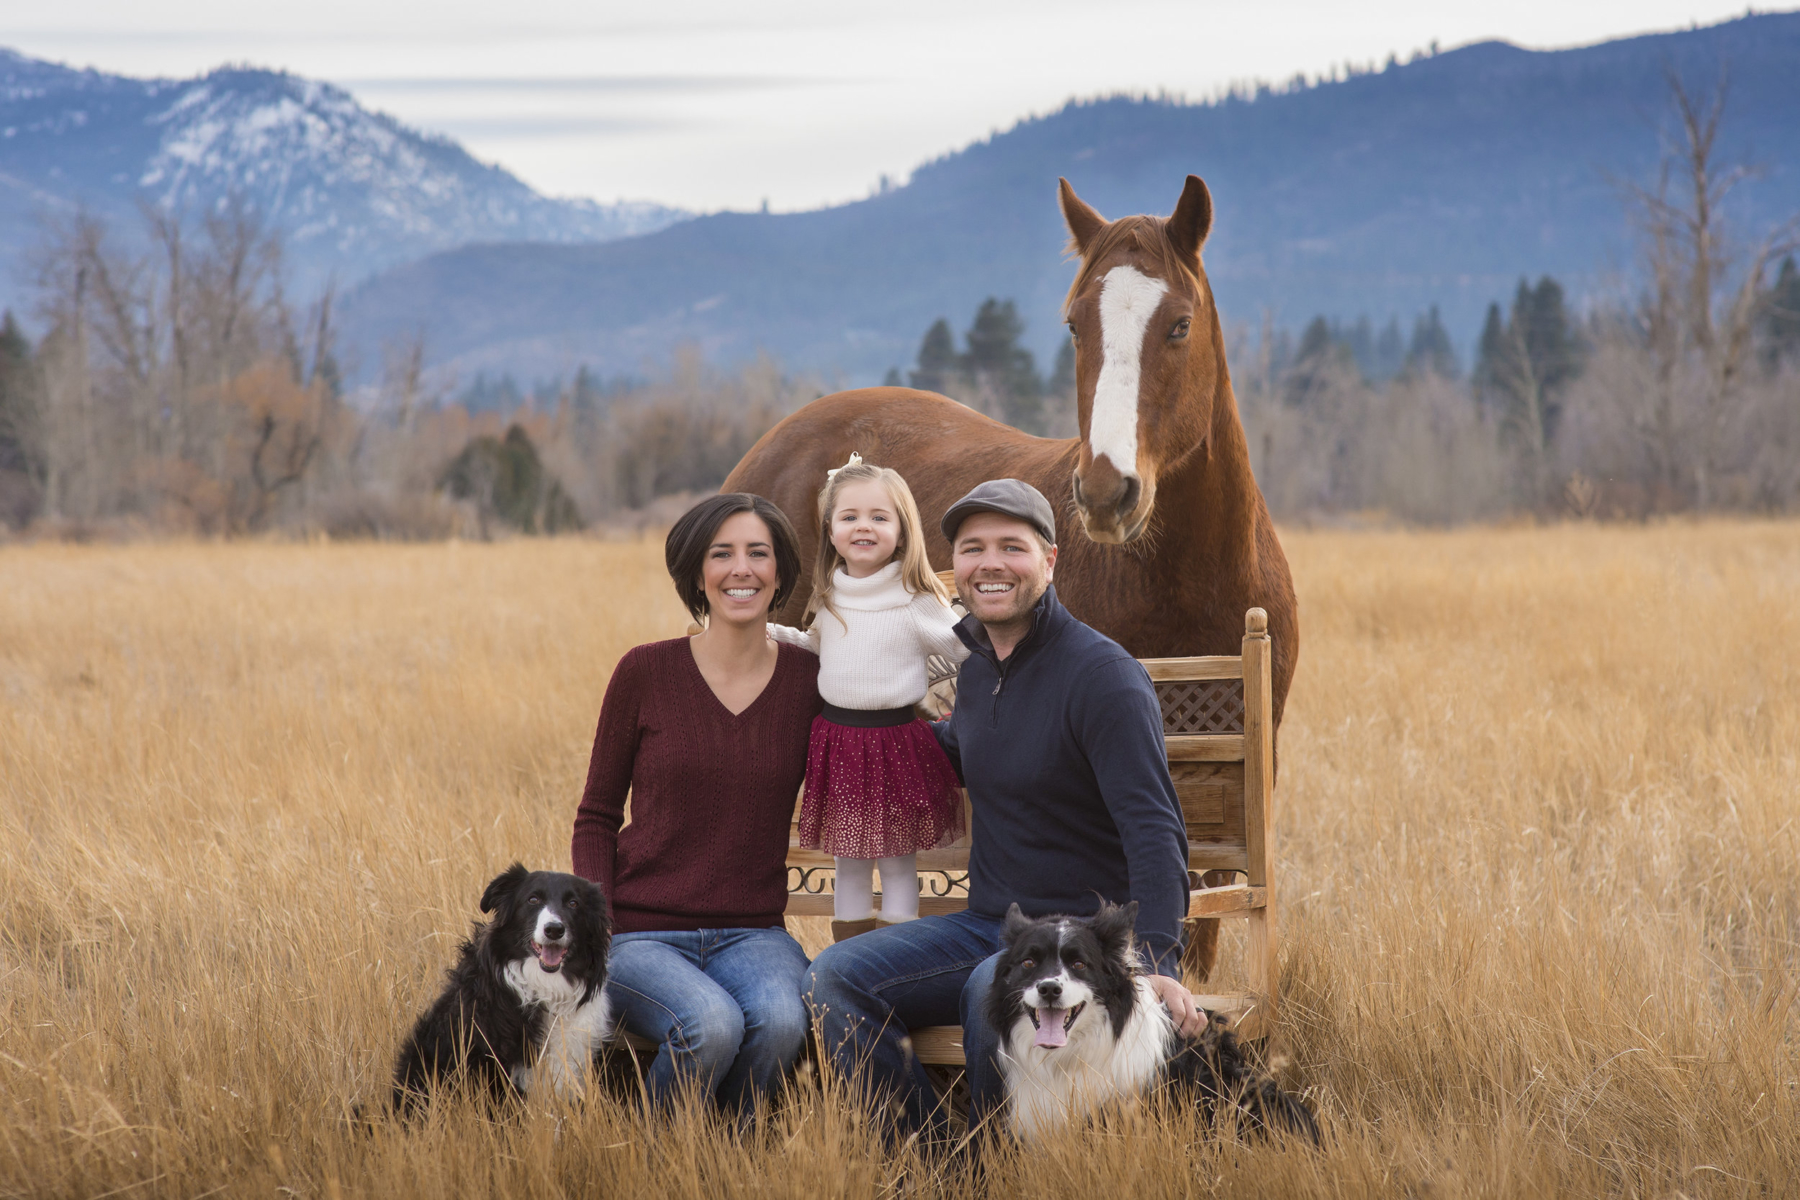 Family Portrait Image by nick higman photography Reno, NV.